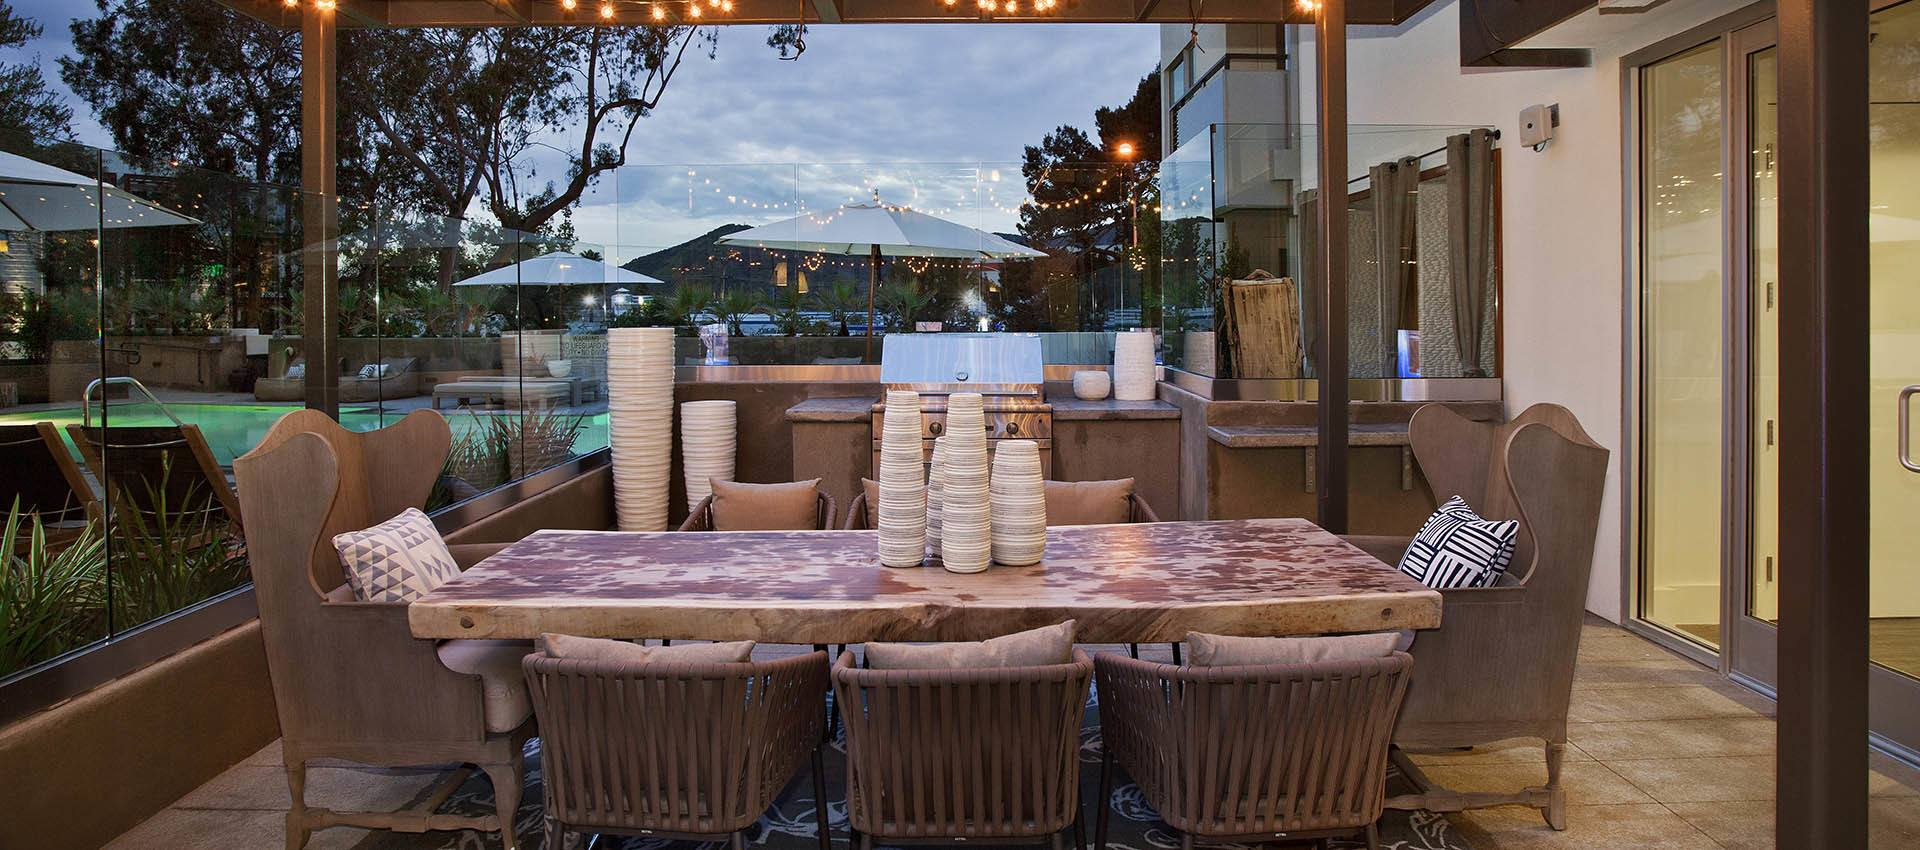 Outdoor Seating at apartments in Glendale, CA